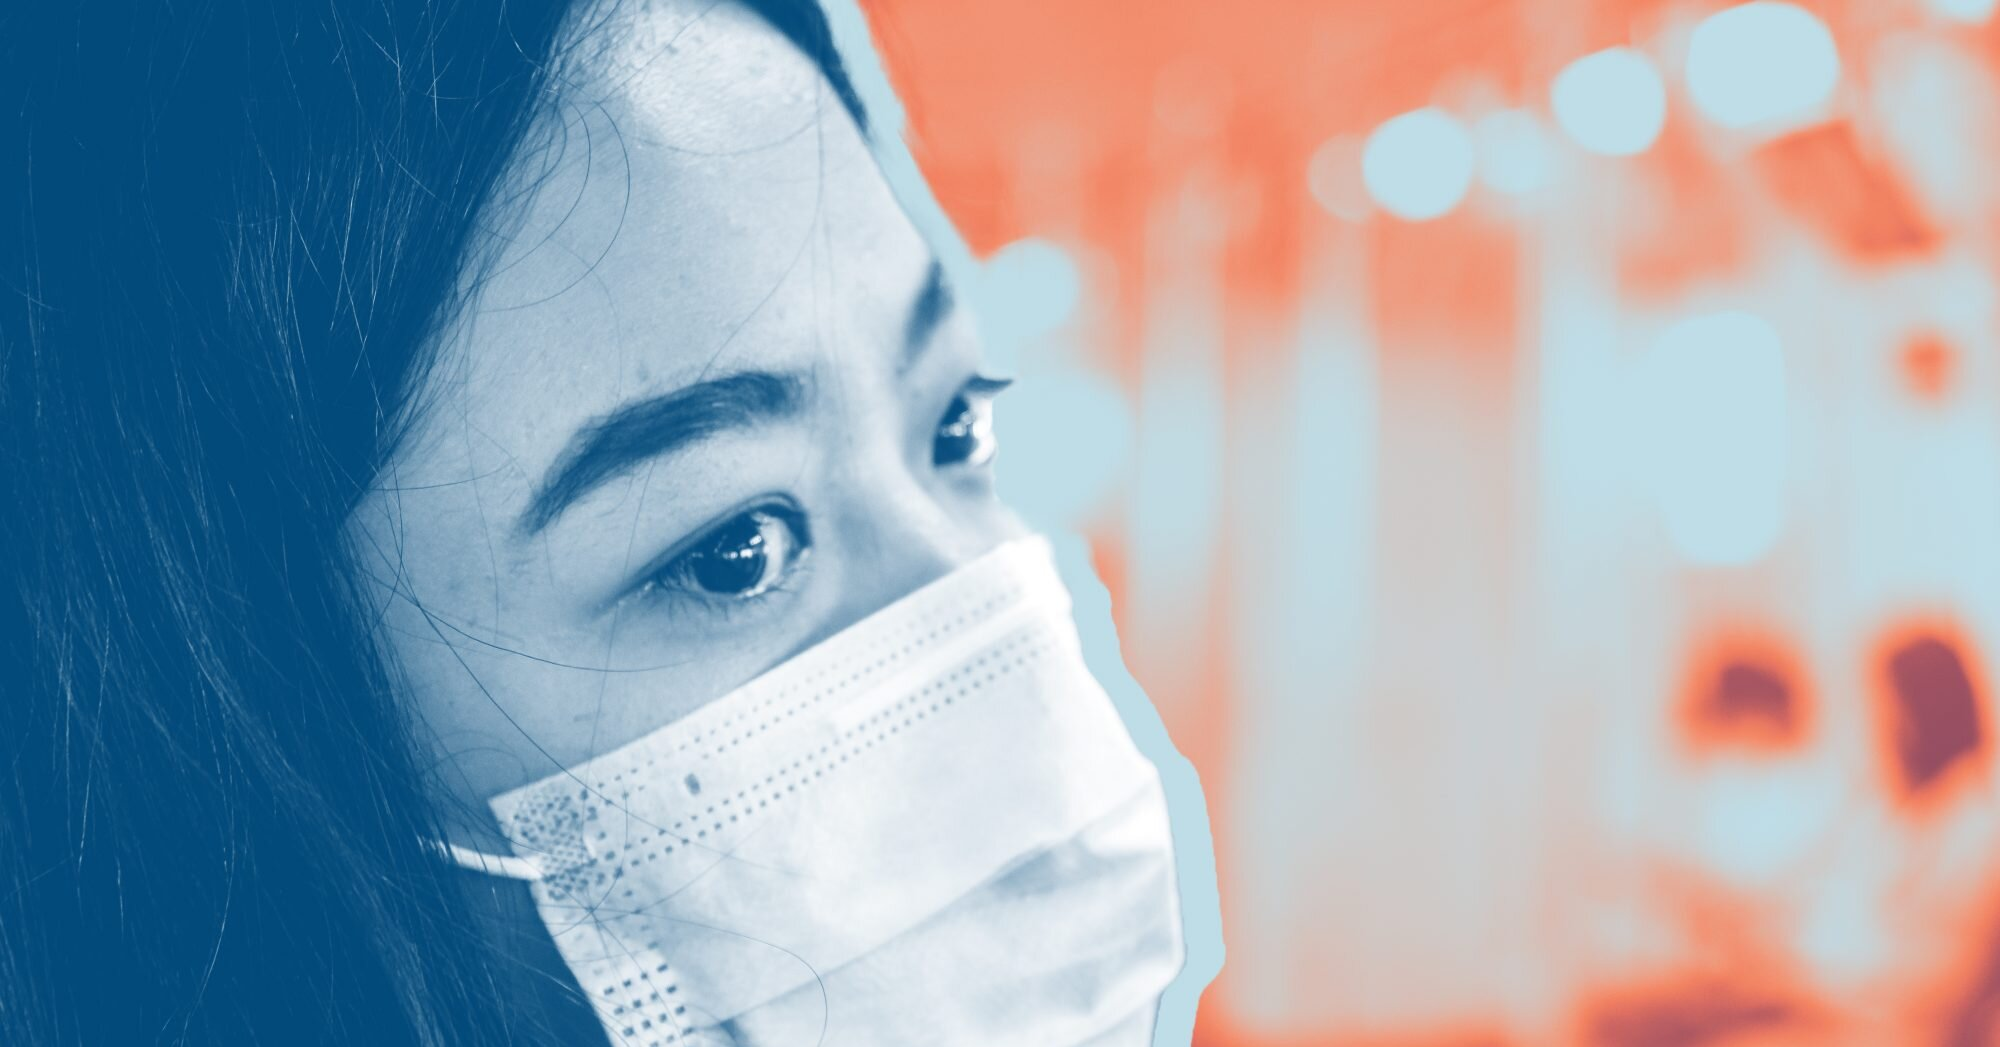 Asian-Americans Are Being Attacked Over Coronavirus Fears